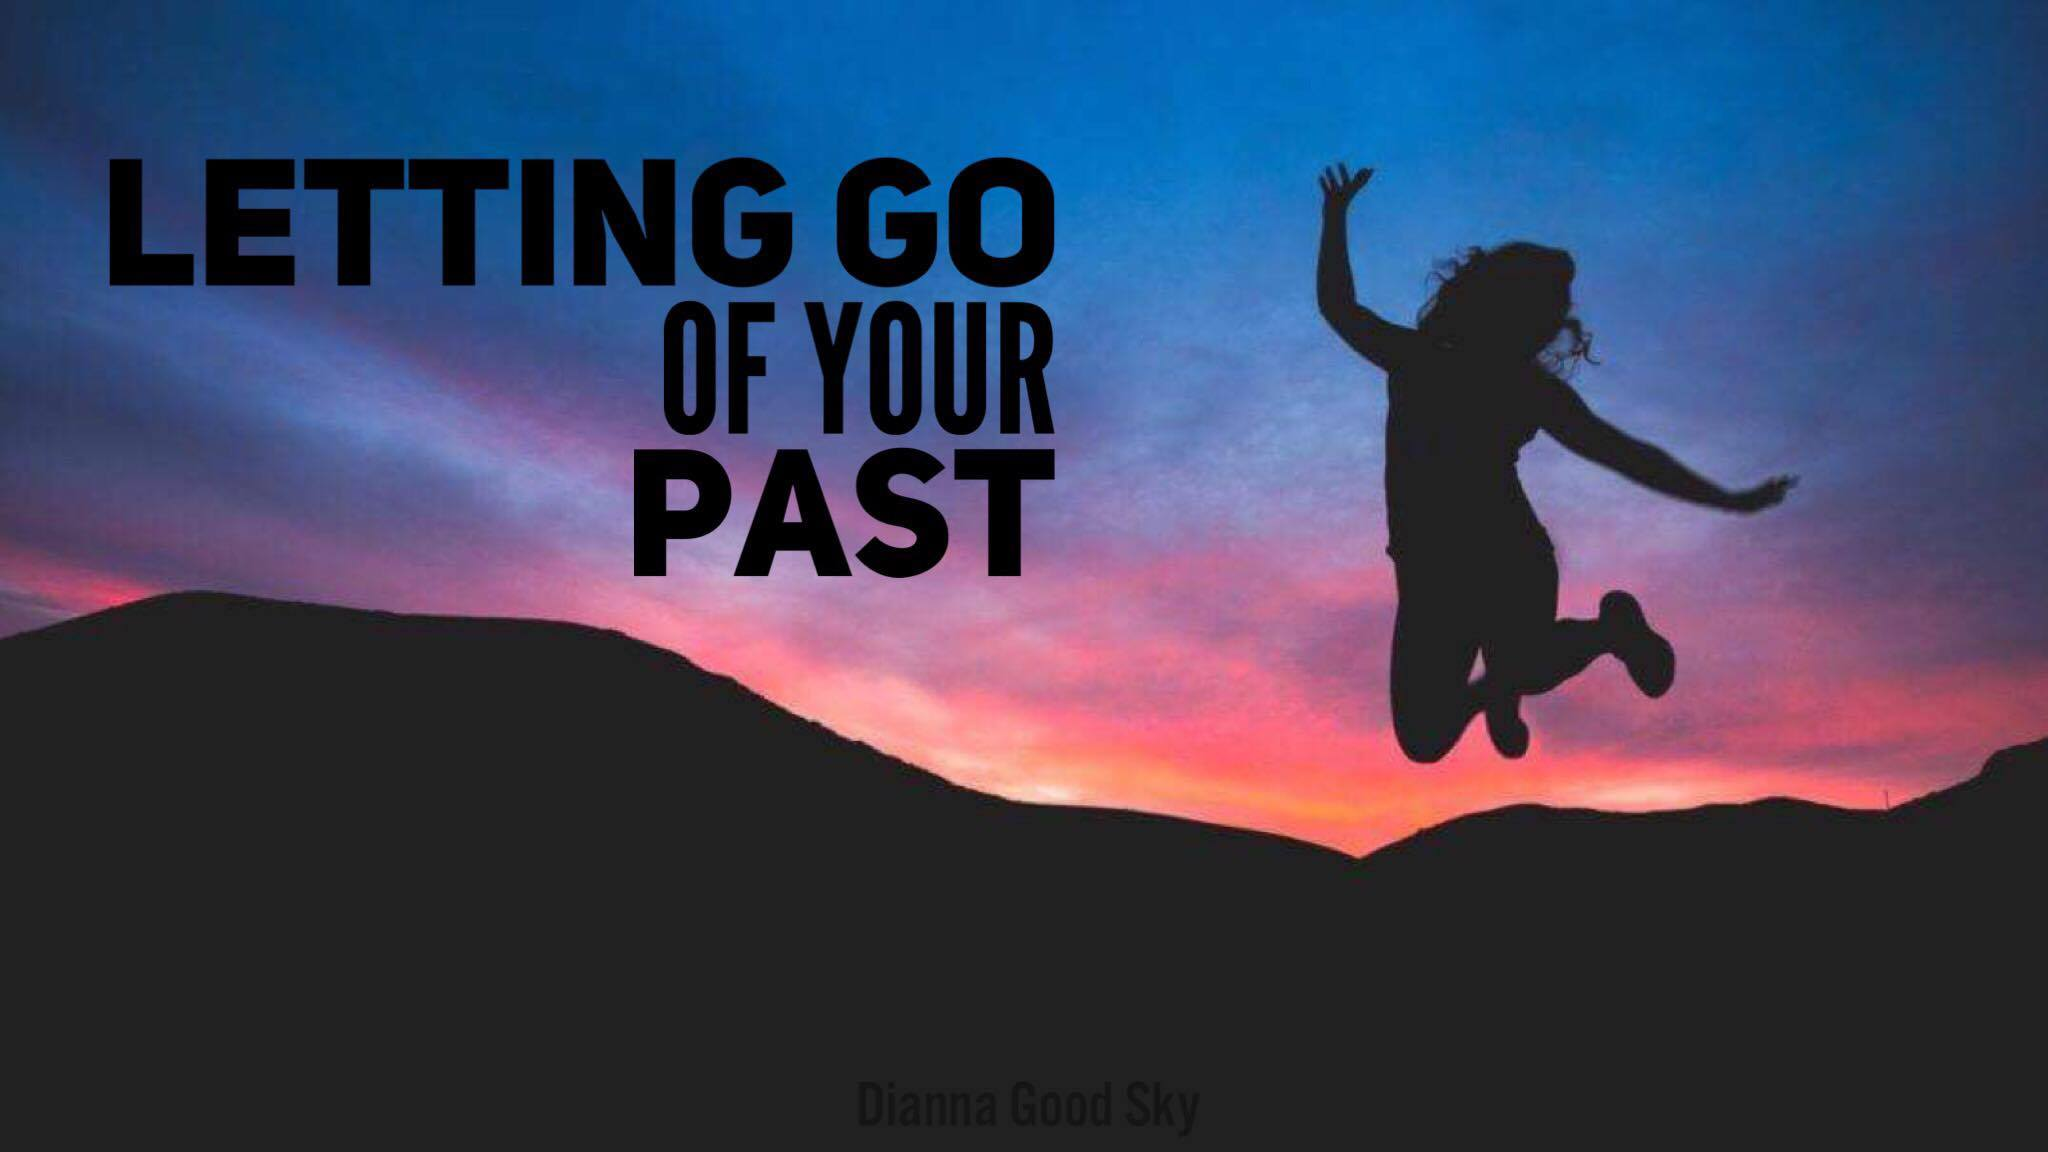 [VIDEO] Letting Go Of Your Past